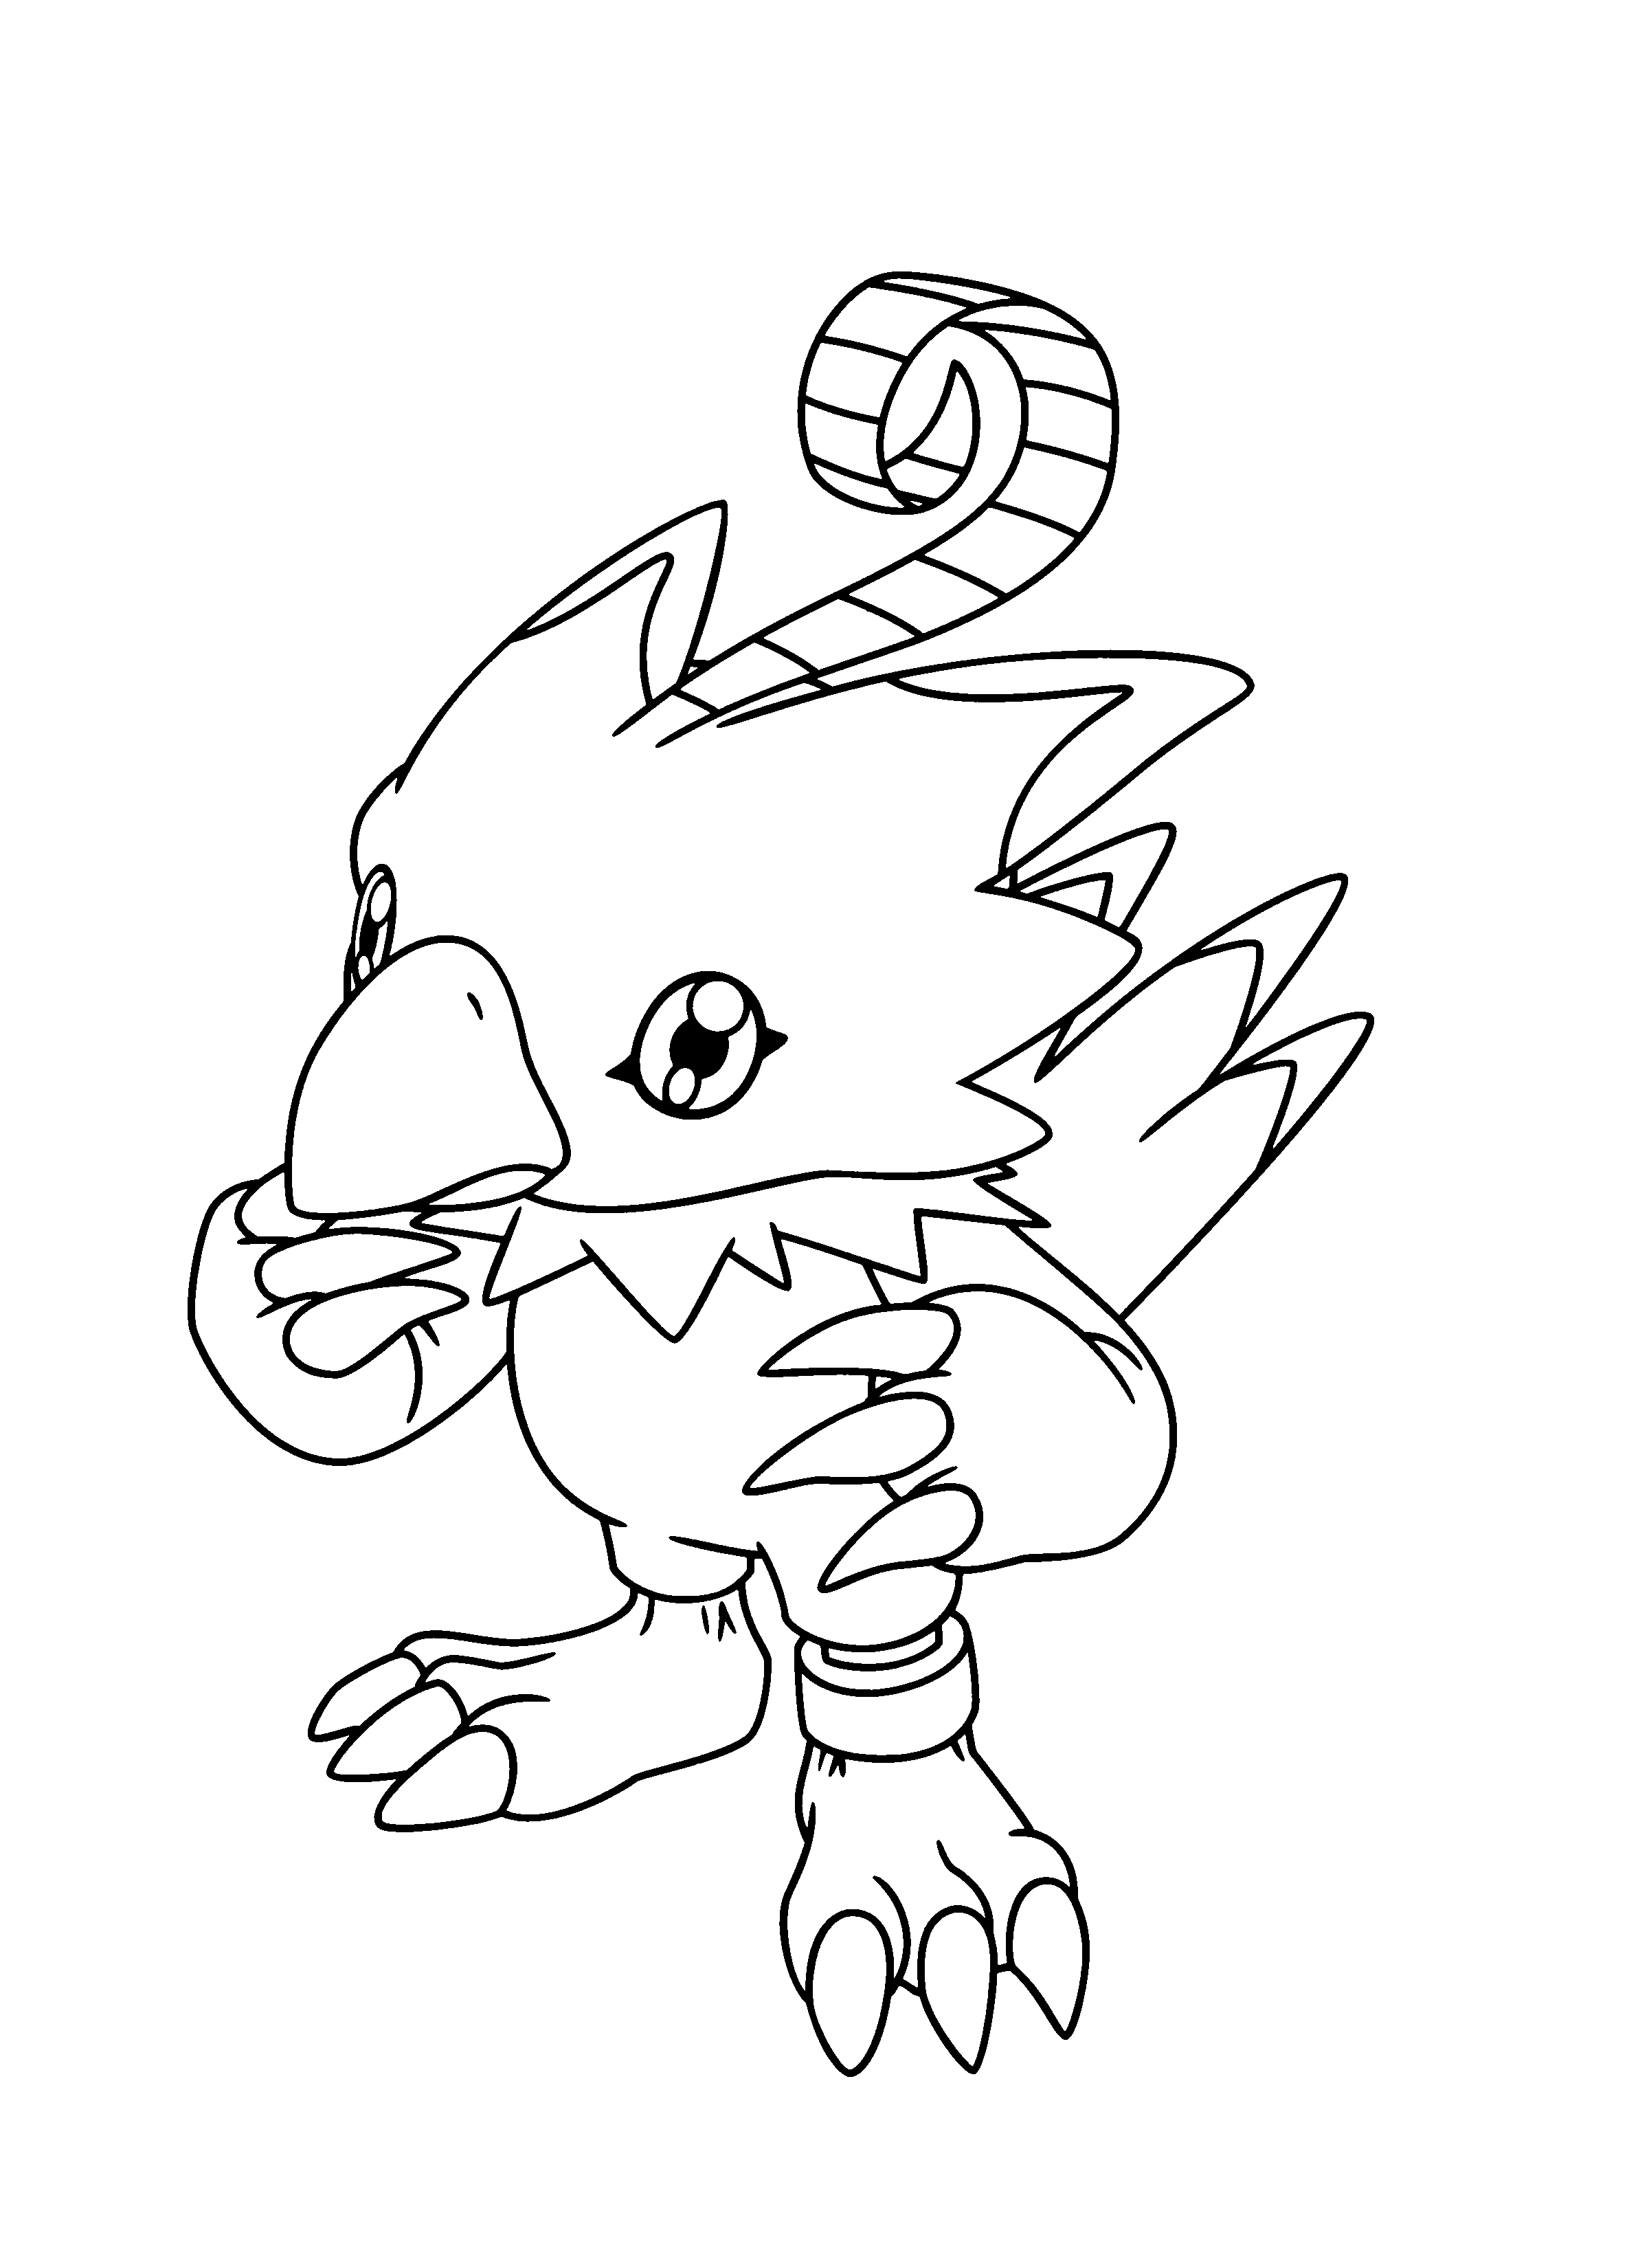 printable digimon coloring pages,printable,coloring pages